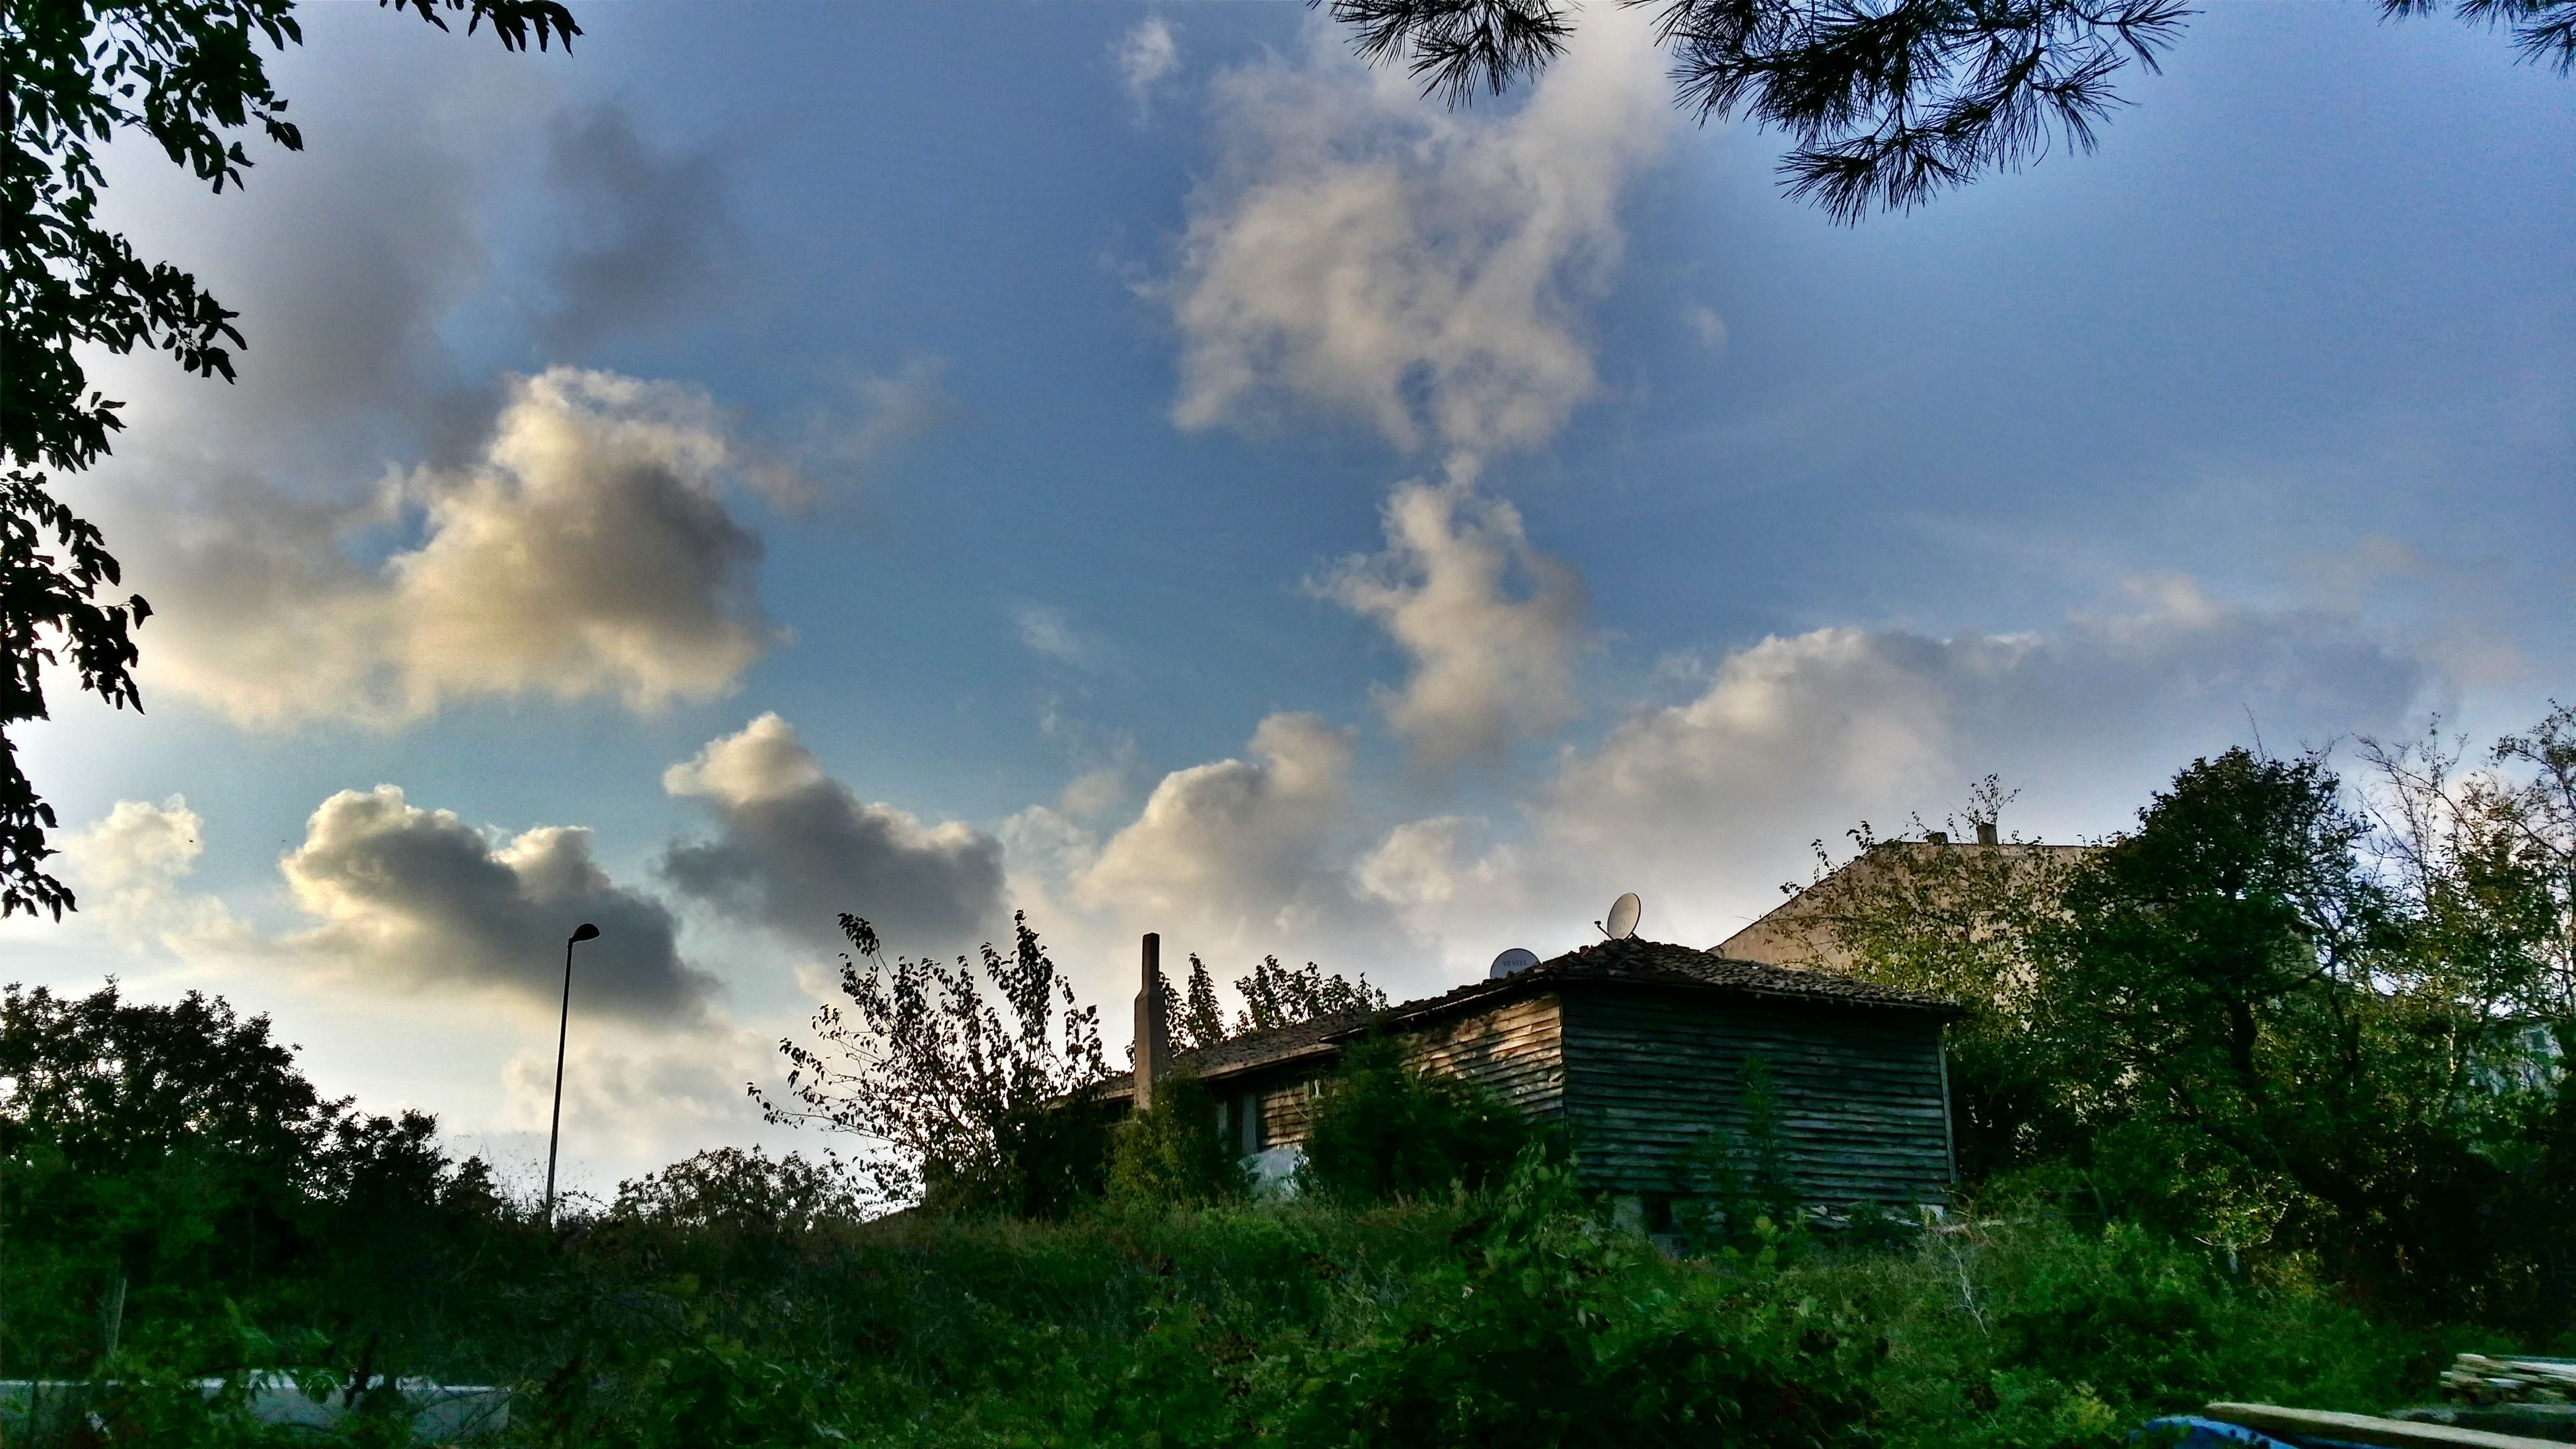 sky, cloud - sky, tree, building exterior, built structure, cloudy, cloud, architecture, house, field, growth, nature, low angle view, grass, tranquility, outdoors, day, tranquil scene, no people, plant